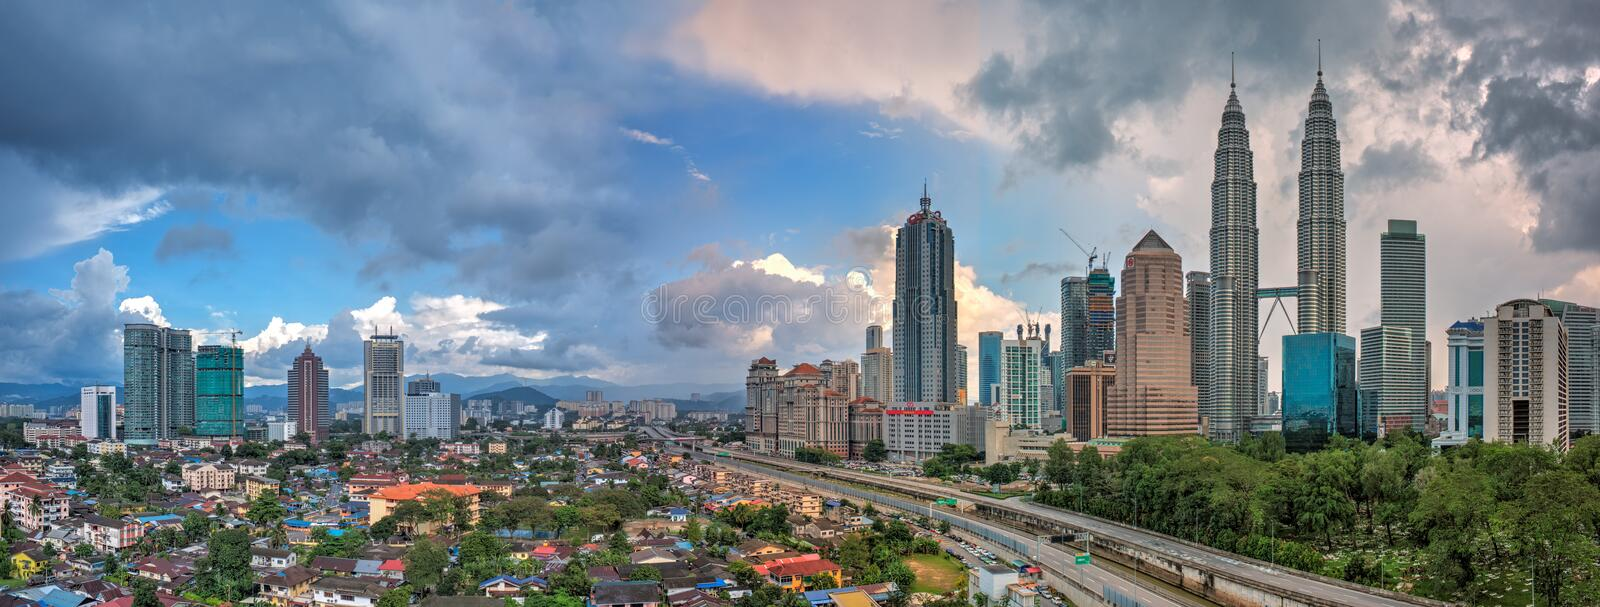 Panoramic of Kuala Lumpur and Petronas Twin Towers during daylight royalty free stock photography